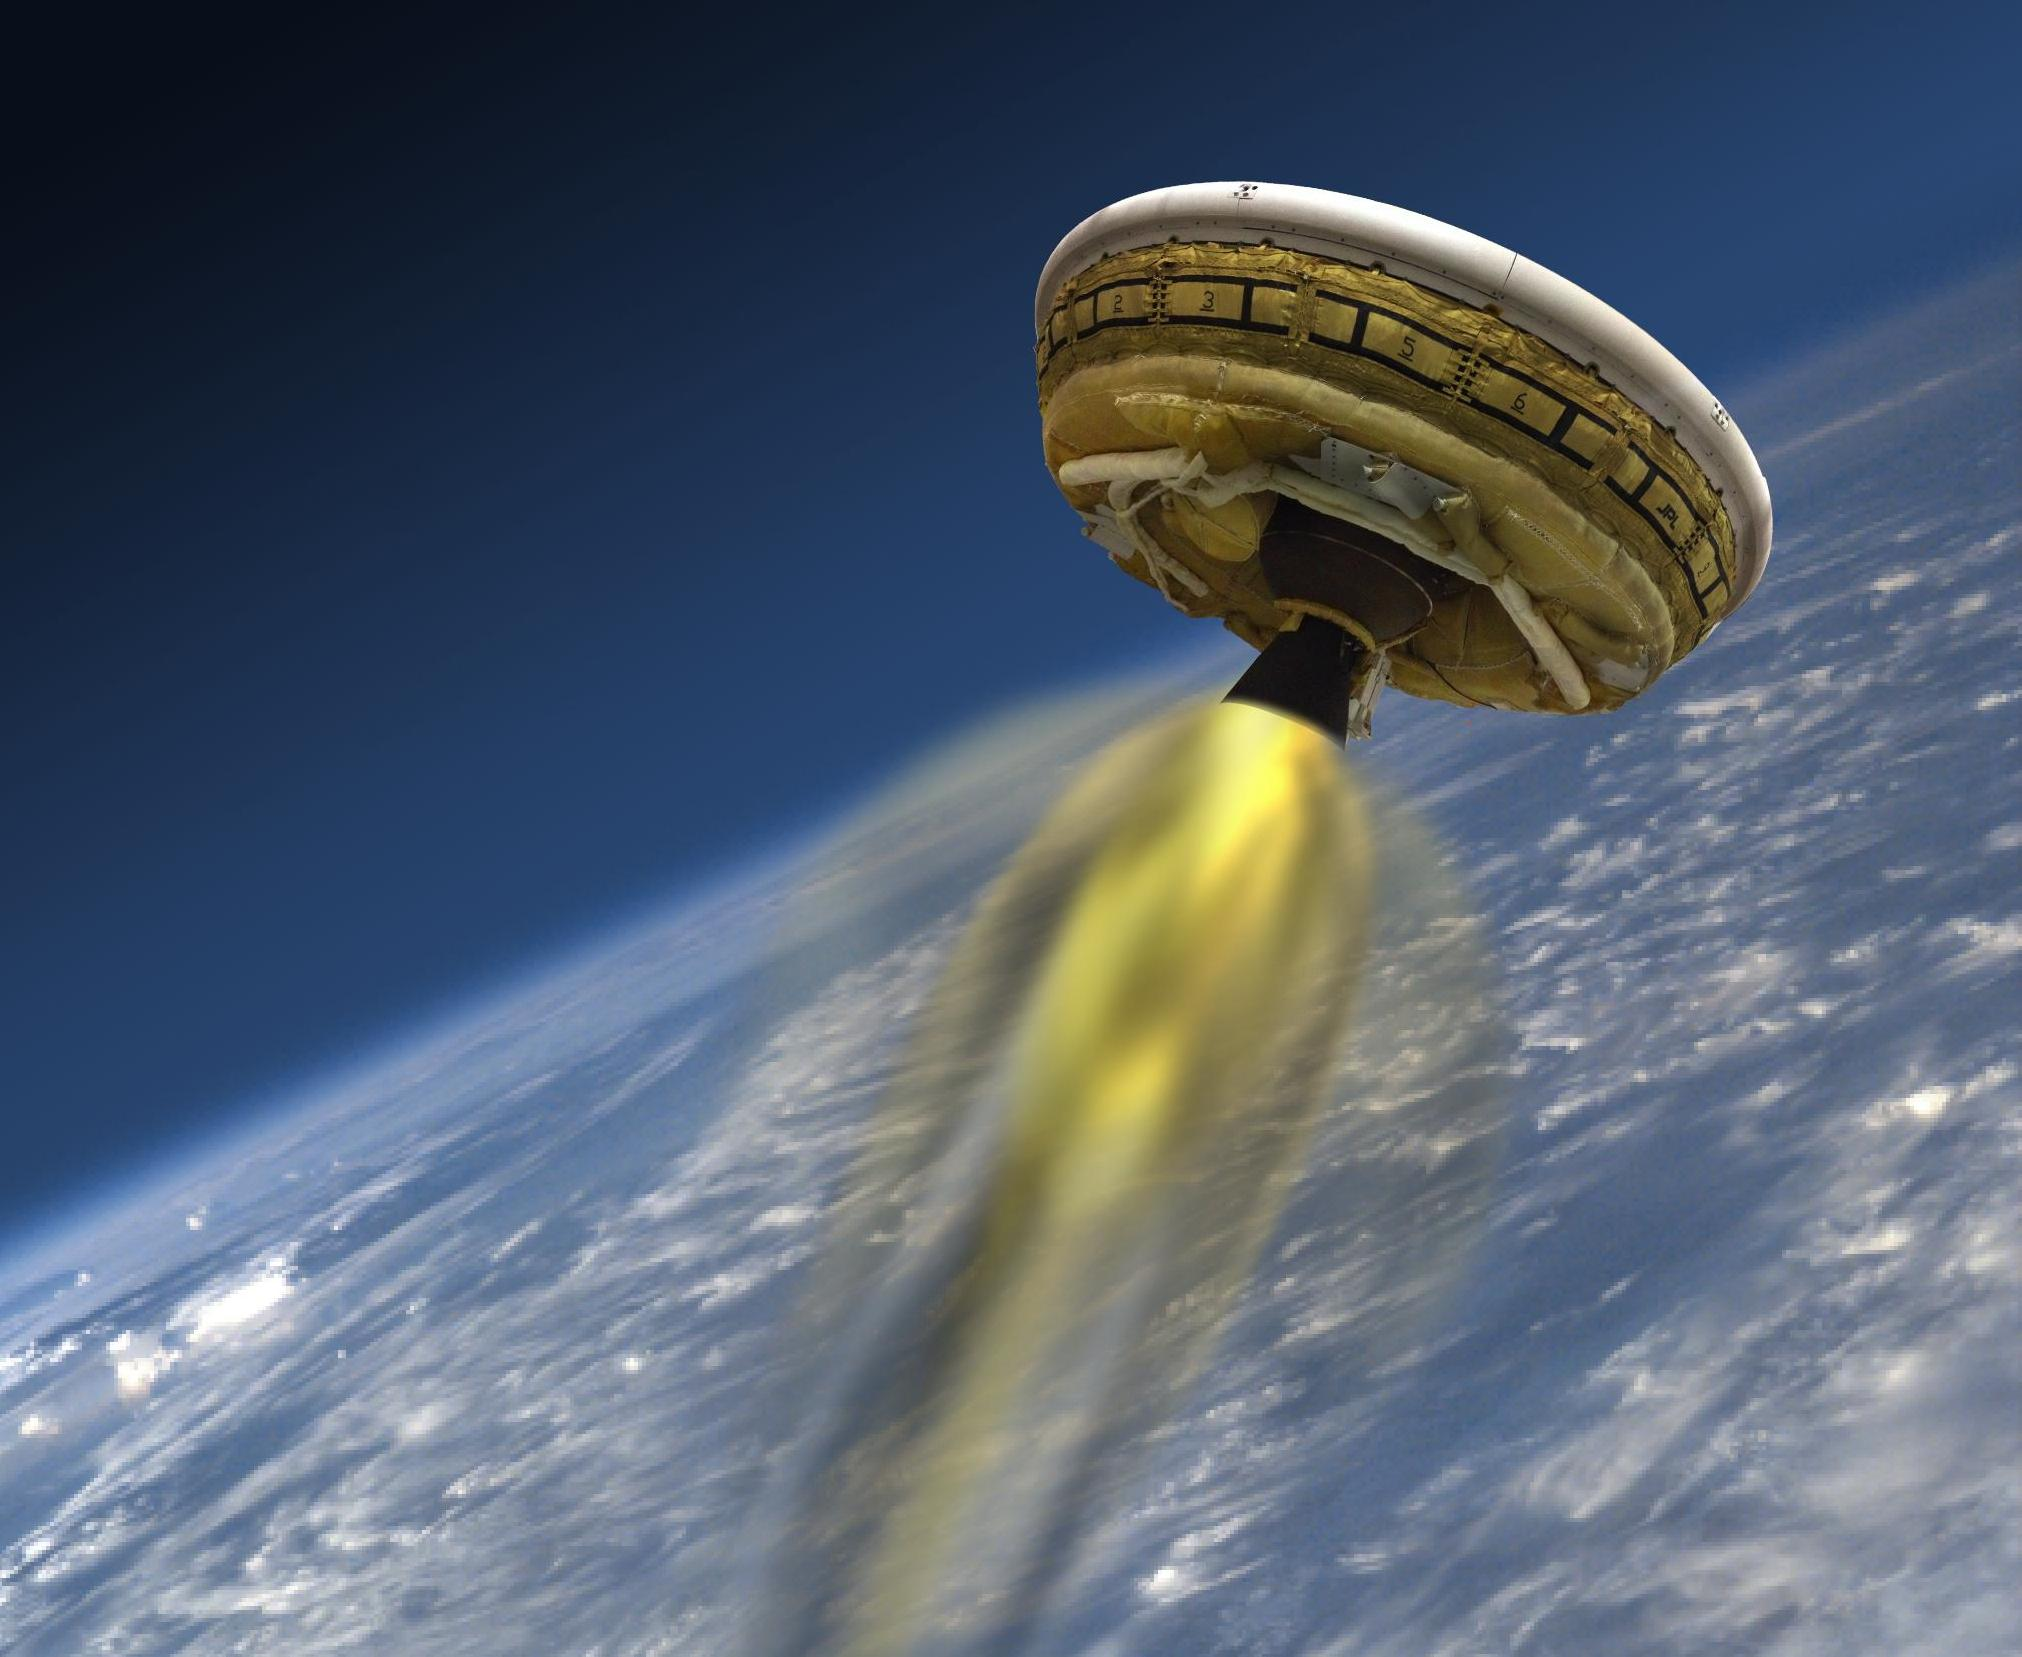 NASA's 'Flying Saucer' Will Test Supersonic Landing From The Edge Of Space